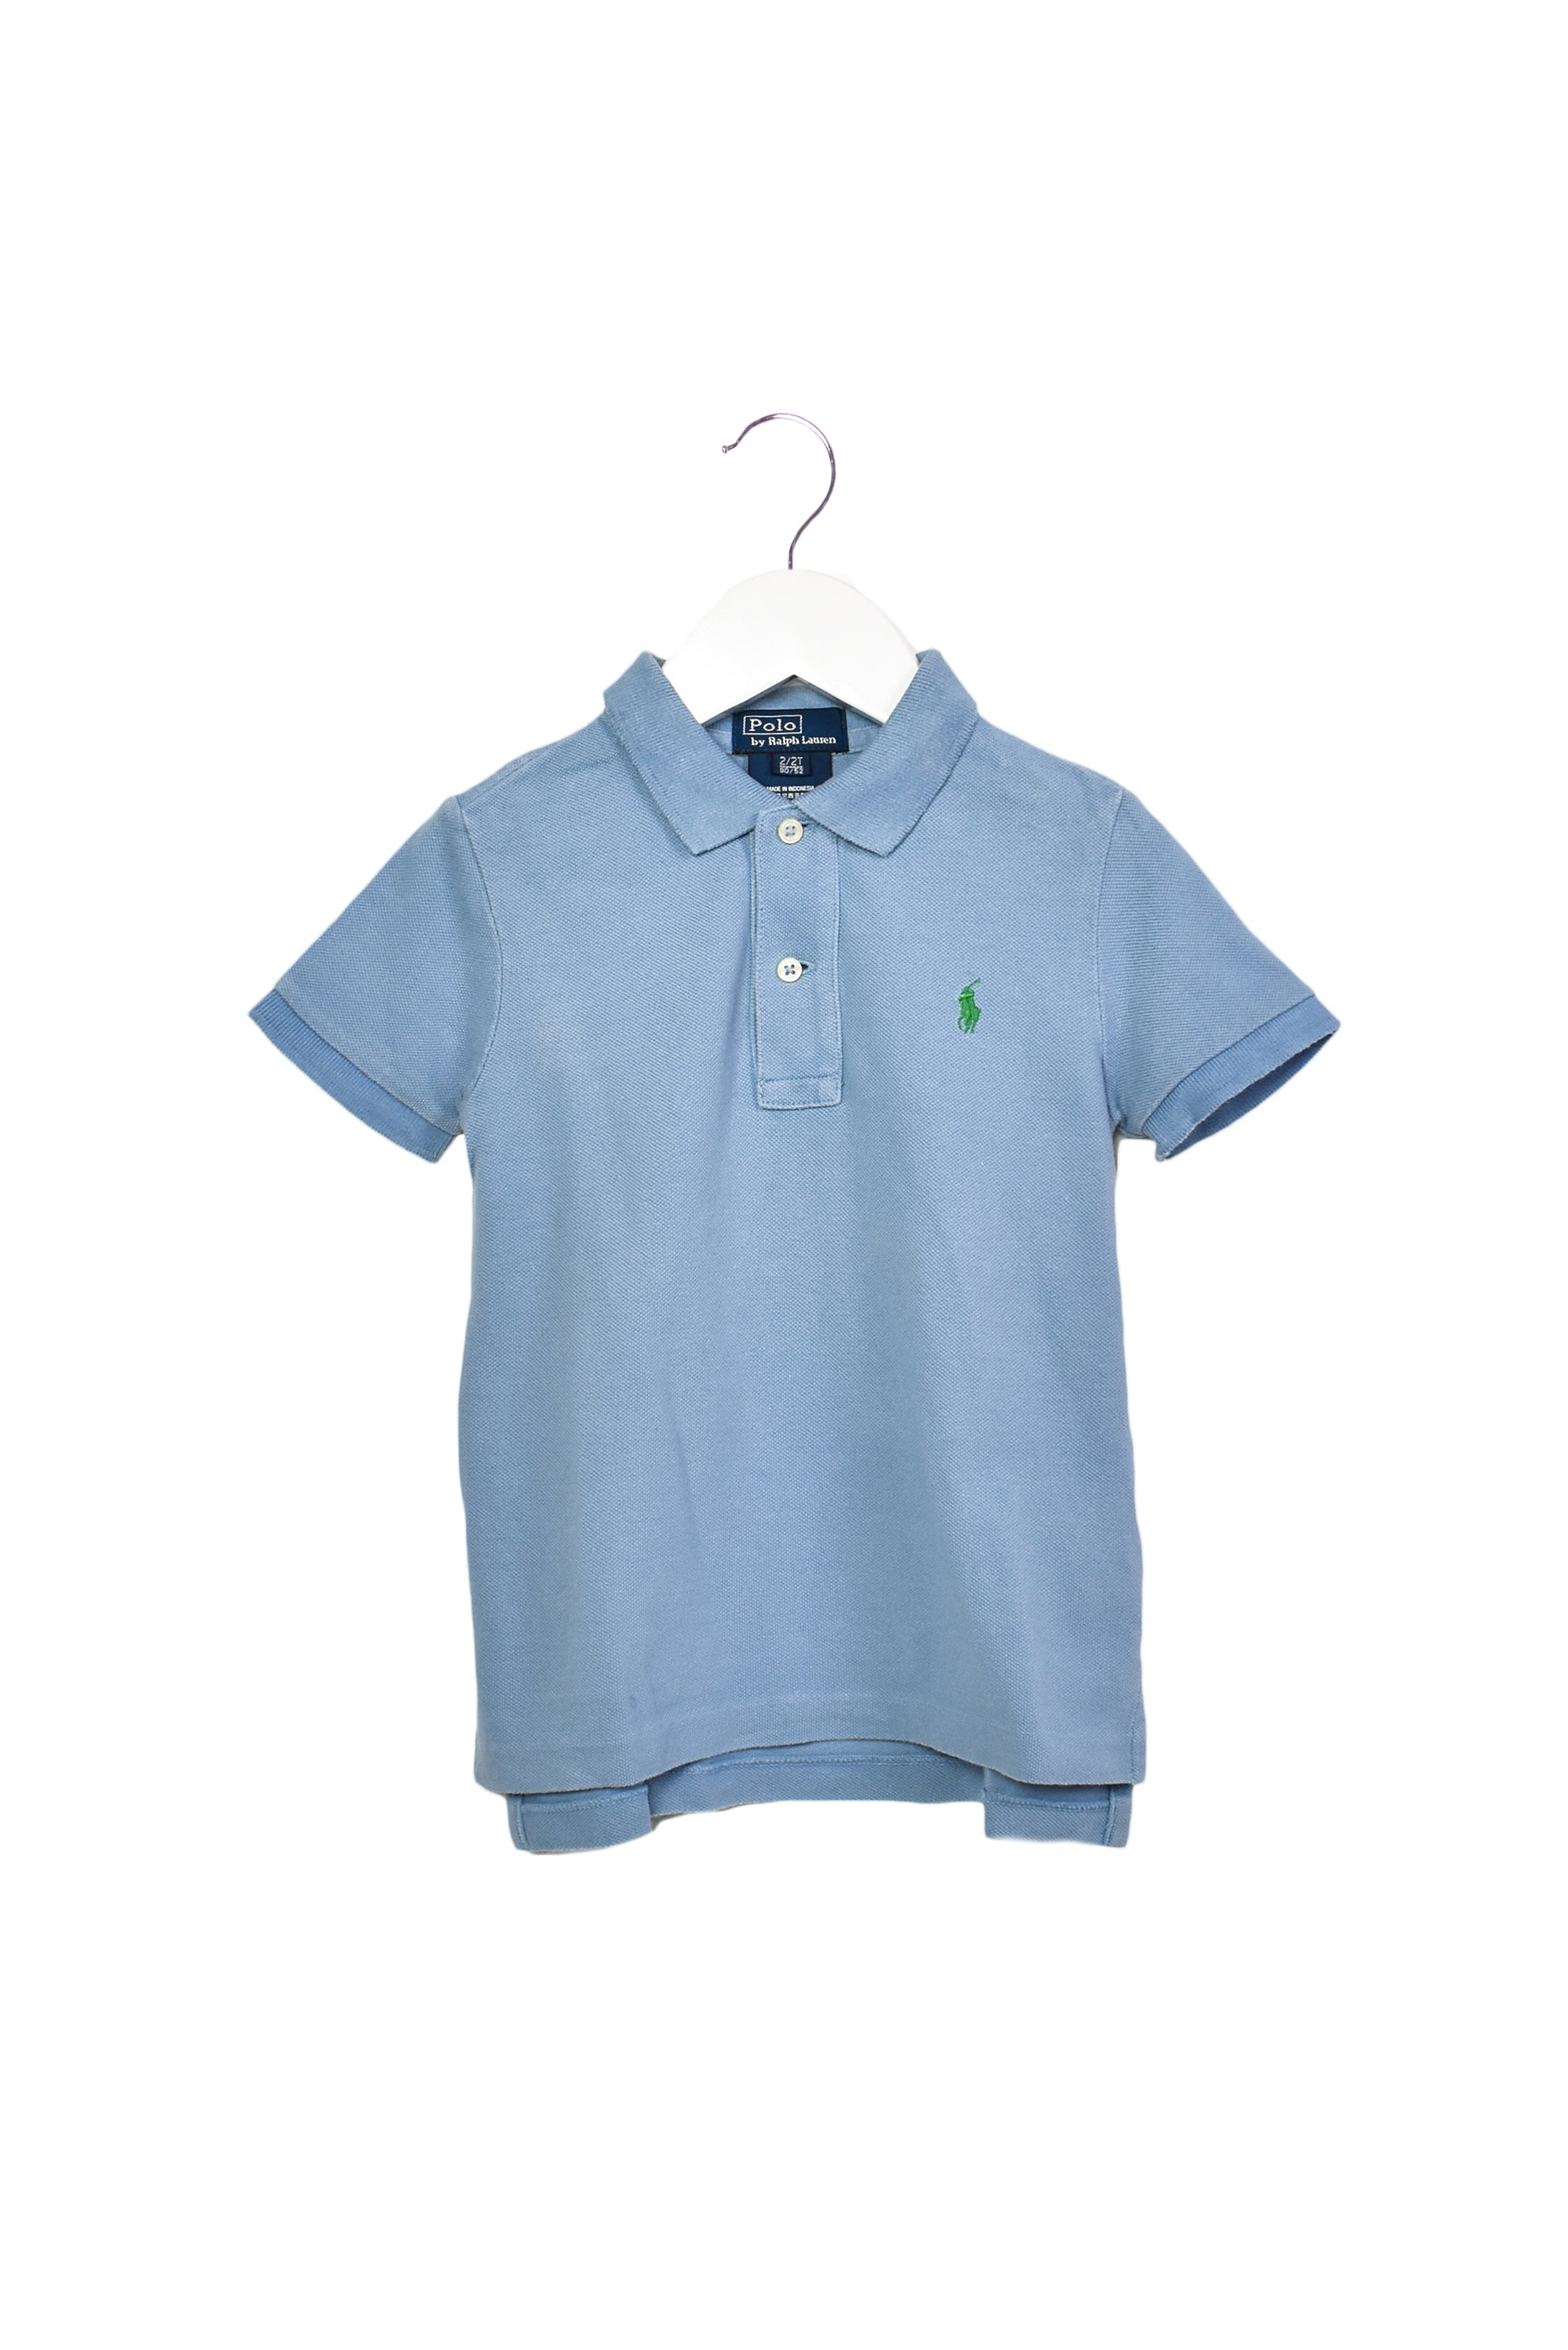 10014339 Polo Ralph Lauren Kids ~ Polo 2T at Retykle